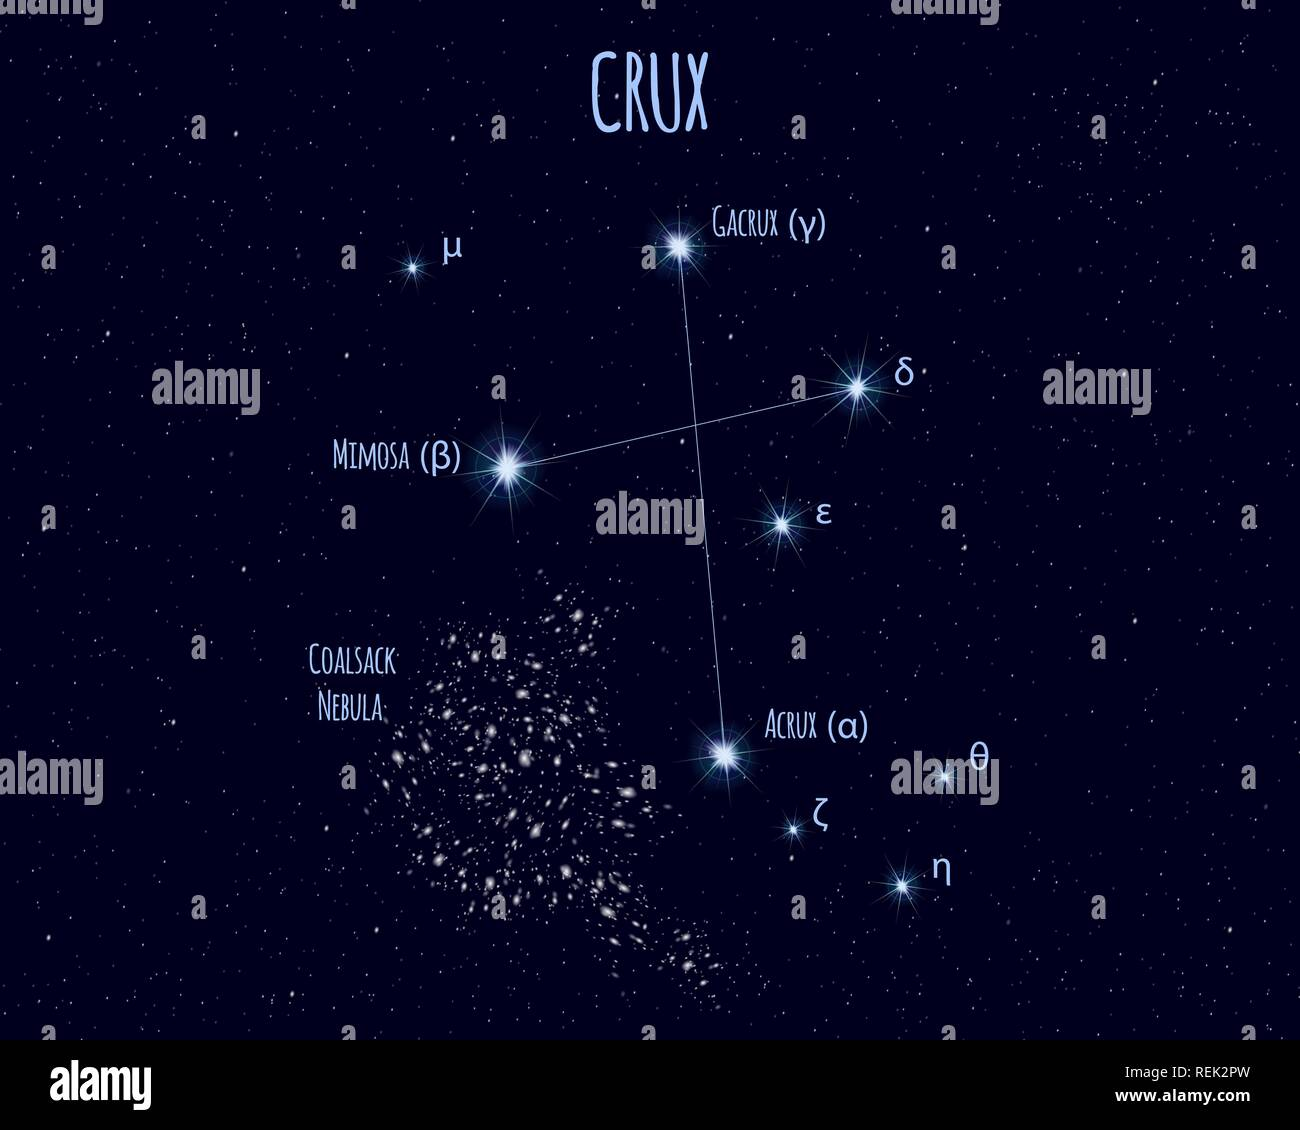 hight resolution of crux the southern cross constellation vector illustration with the names of basic stars